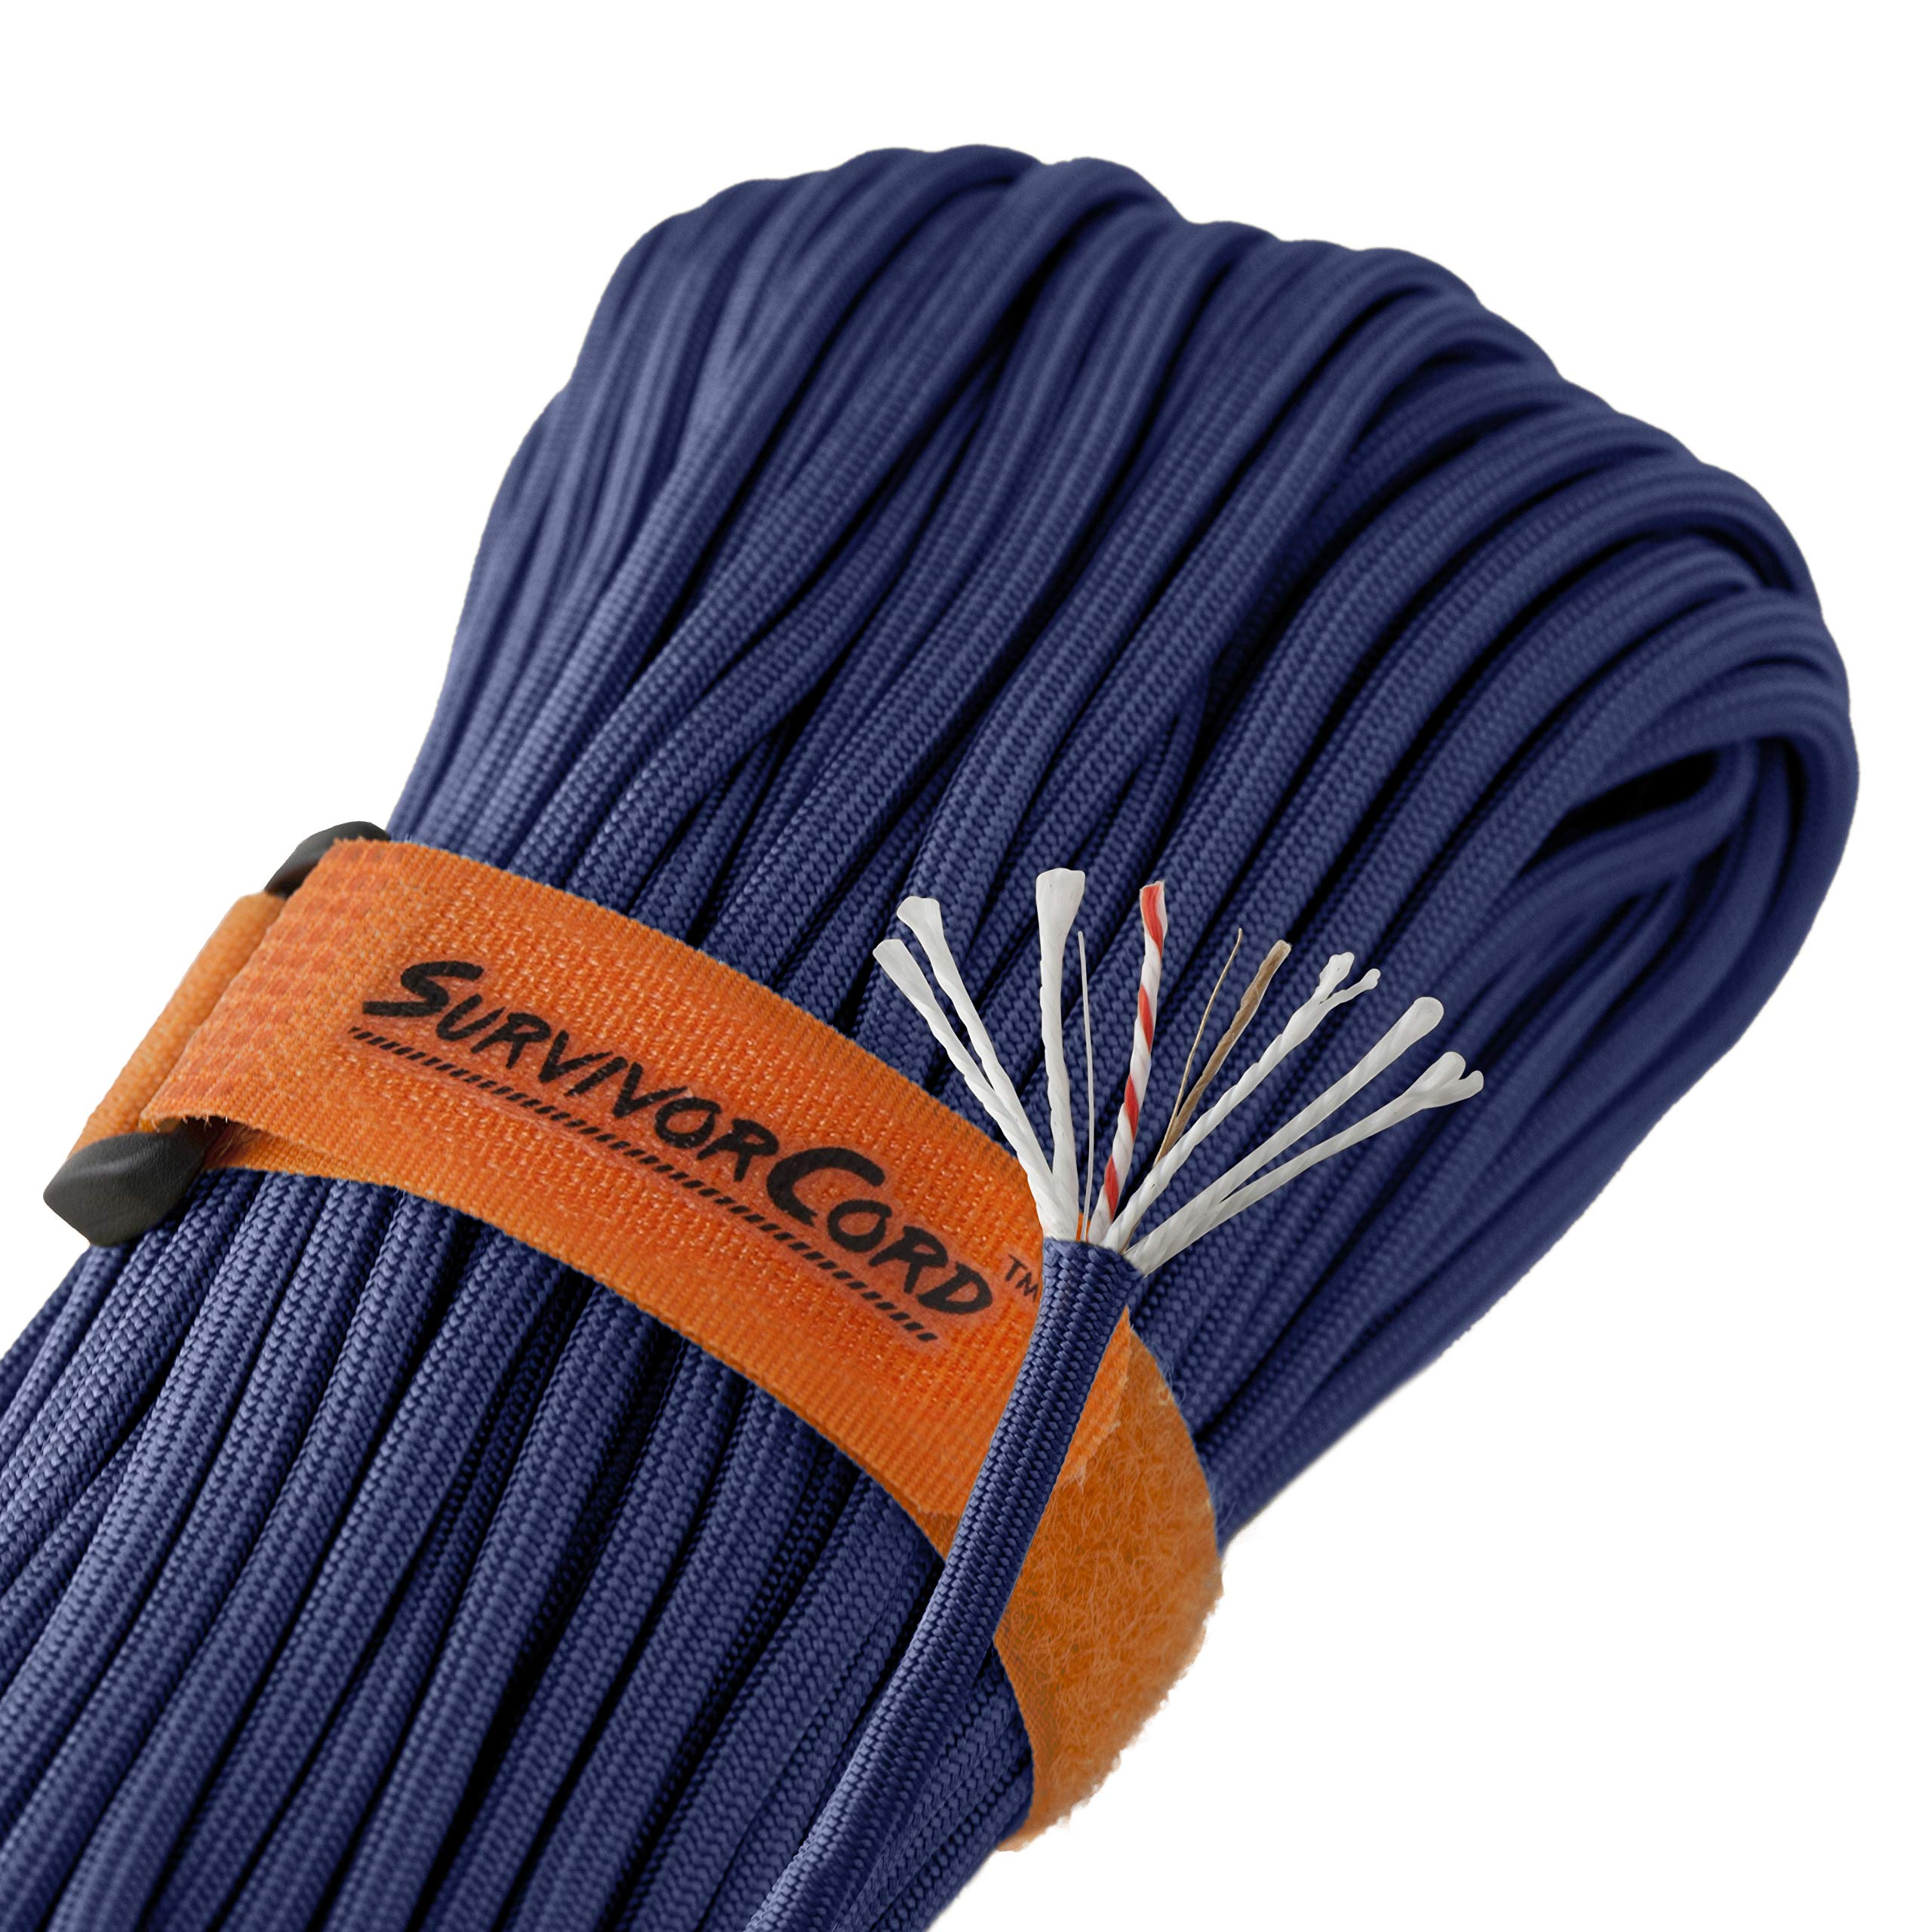 Titan SurvivorCord | Royal Blue | 103 Feet | Patented Military Type III 550 Paracord/Parachute Cord (3/16'' Diameter) with Integrated Fishing Line, Fire-Starter, and Utility Wire.